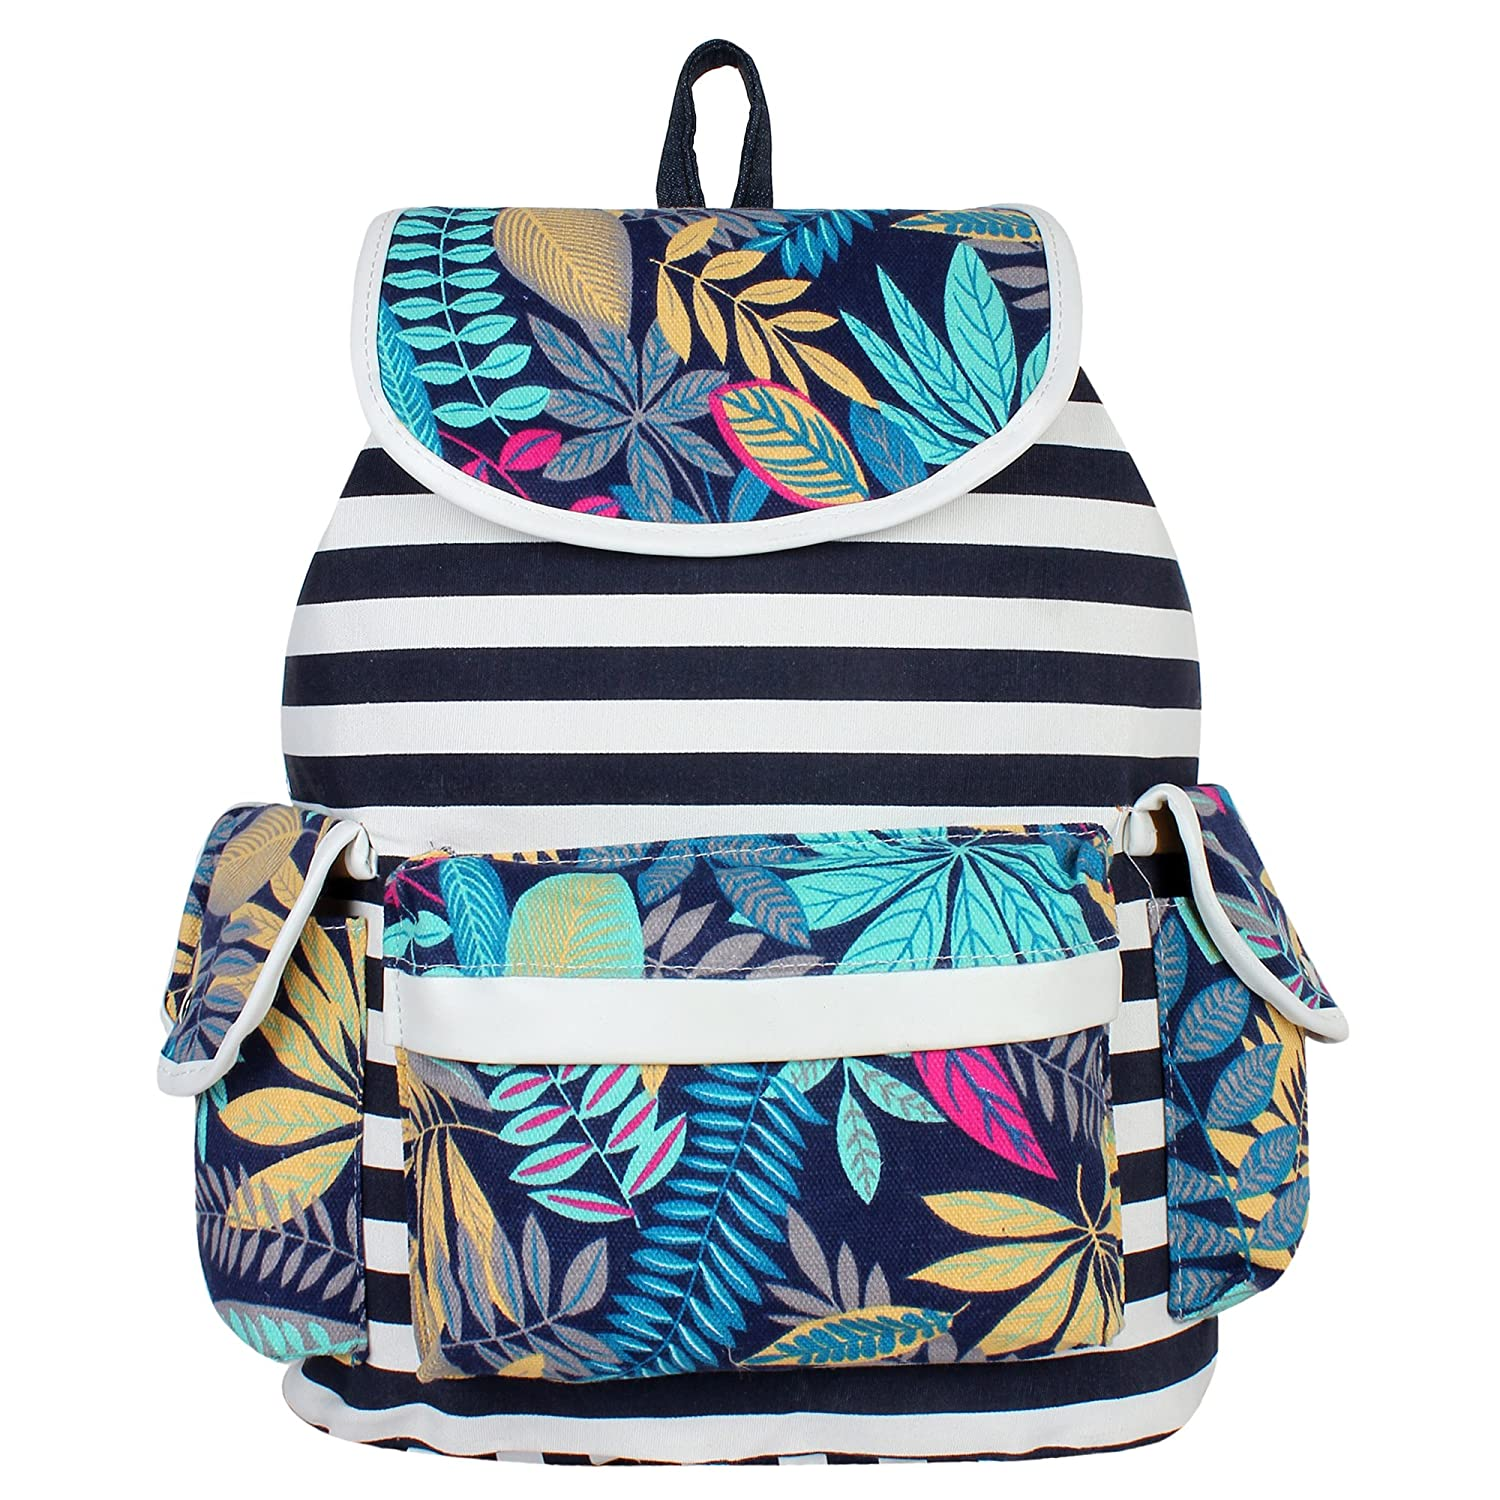 ec6a9615efd8 Buy Atled Multicolor Women s Backpack Online at Low Prices in India -  Amazon.in